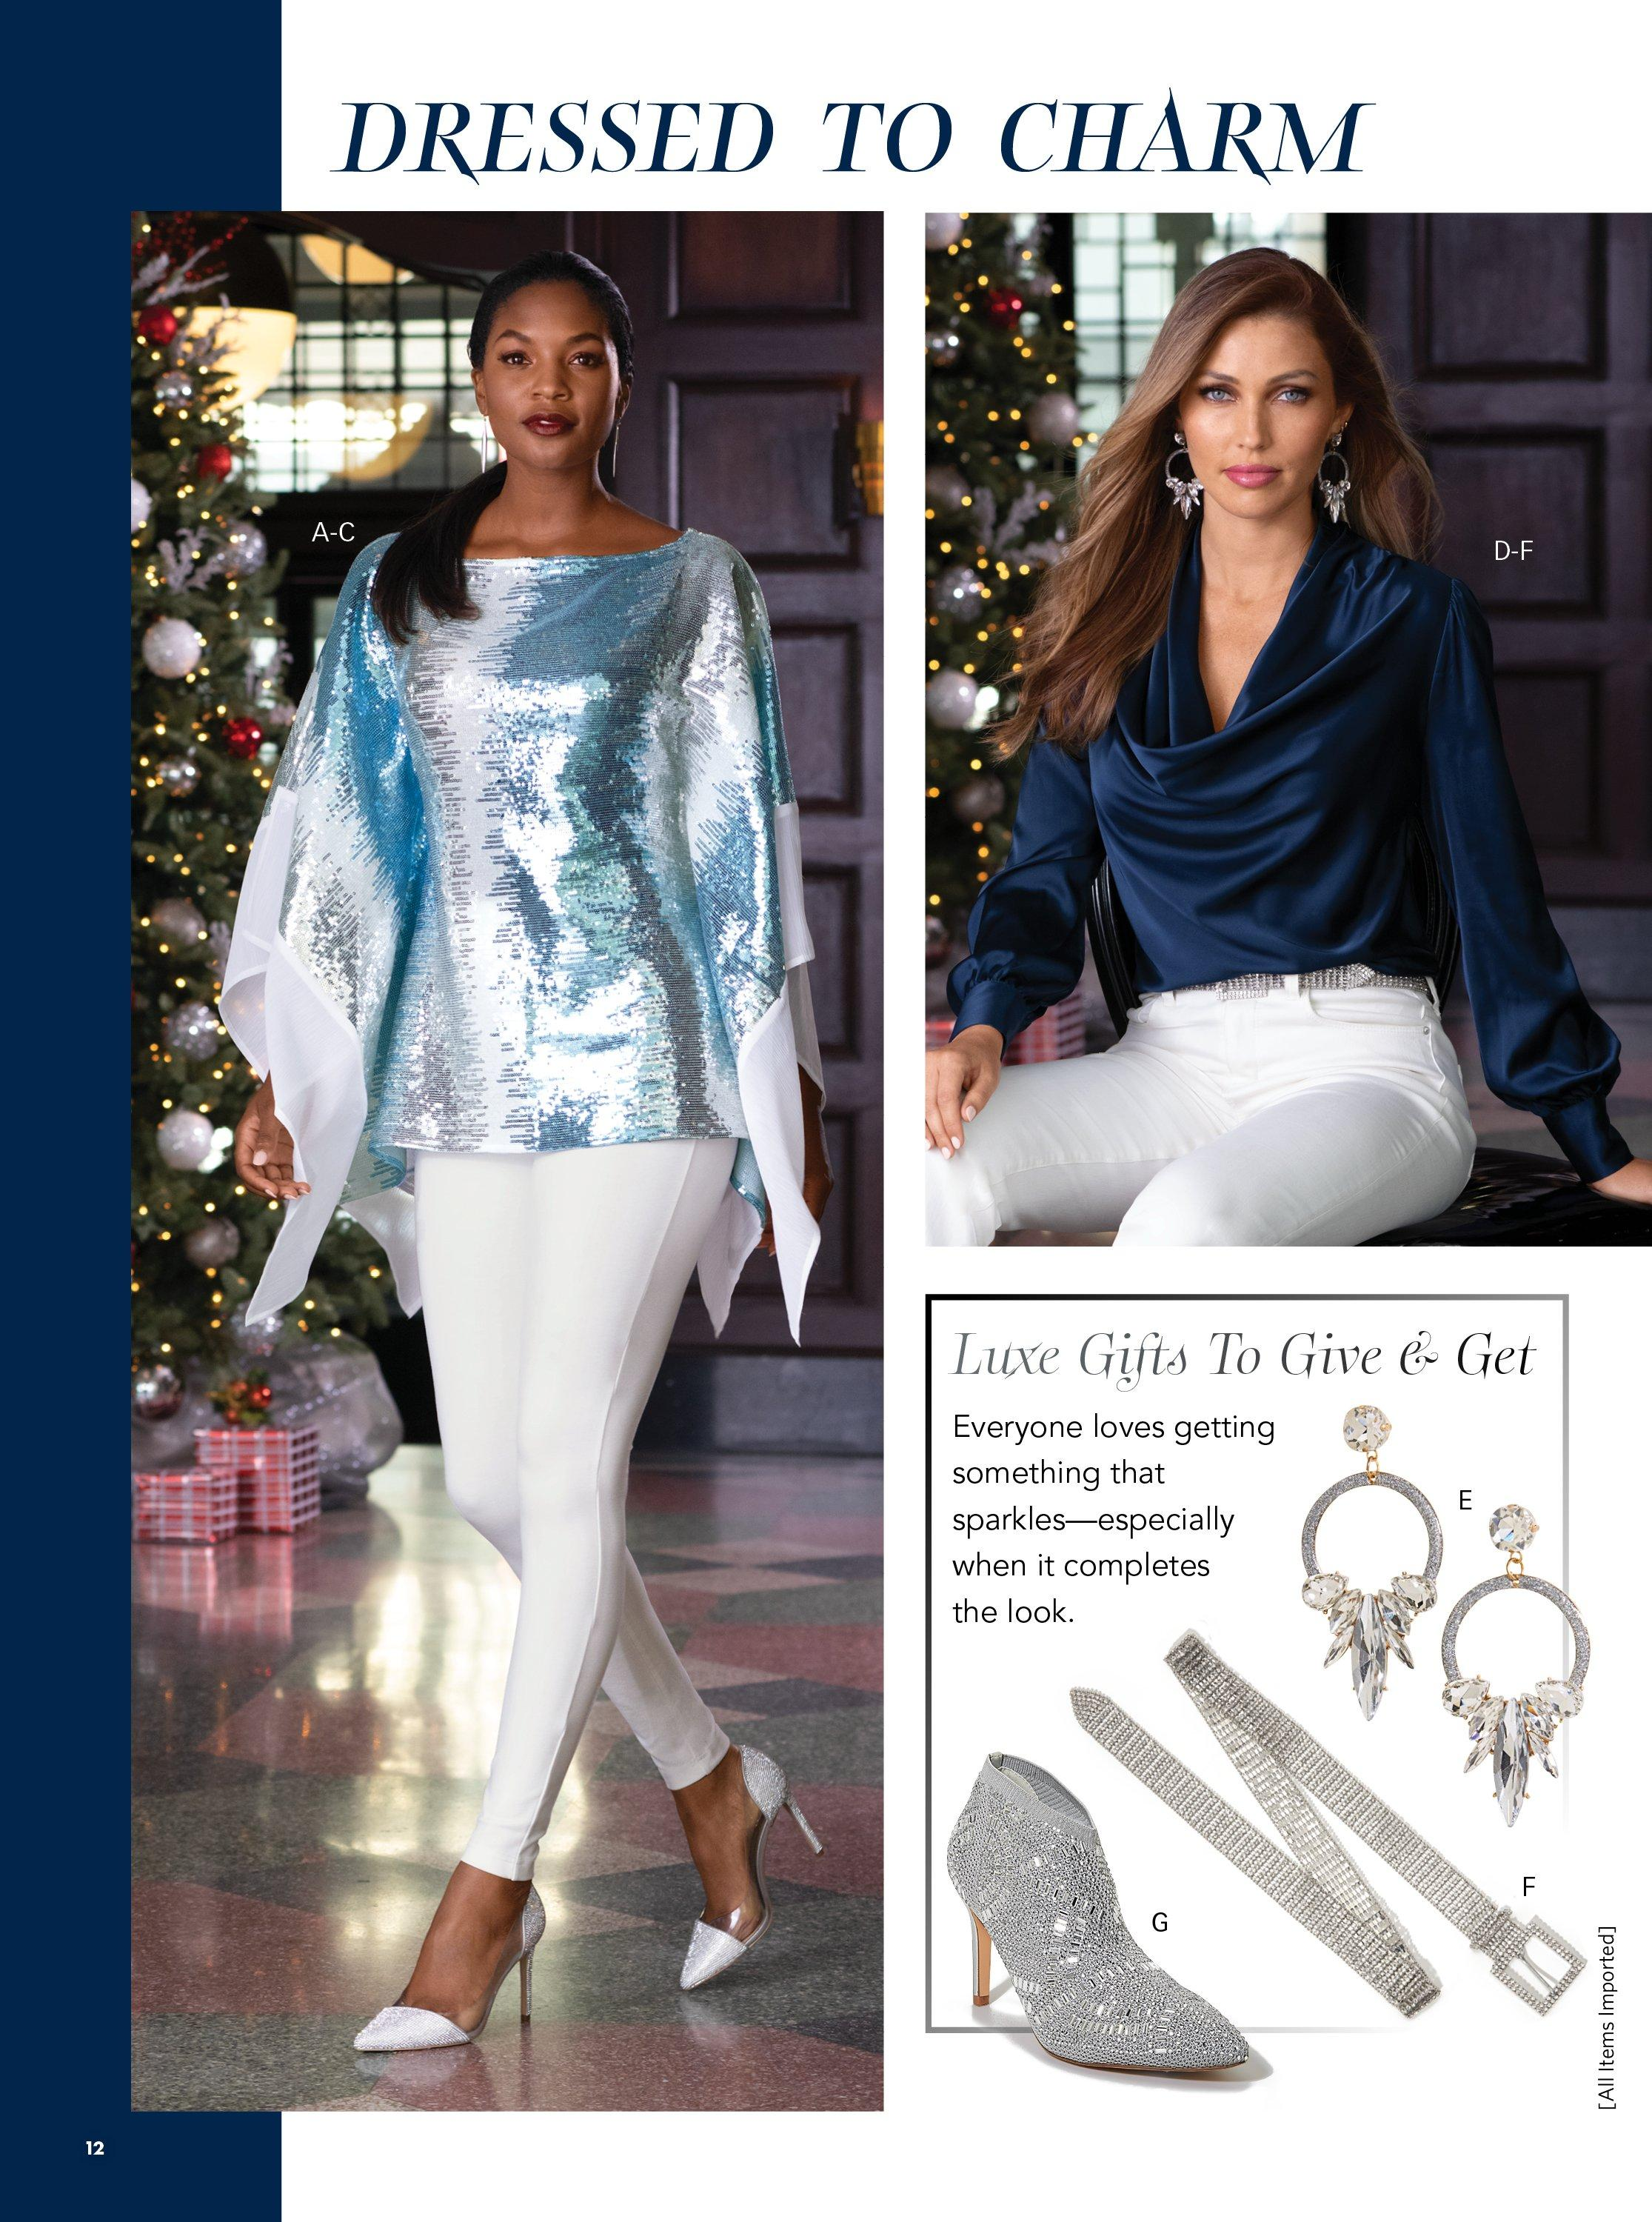 left model wearing a blue sequin poncho, white jeans, and rhinestone embellished vinyl heels. right model wearing a navy cowl neck long-sleeve charm blouse, white jeans, crystal drop hoop earrings, and a silver rhinestone belt. pull out image of silver rhinestone booties, silver rhinestone belt, silver crystal drop hoop earrings.